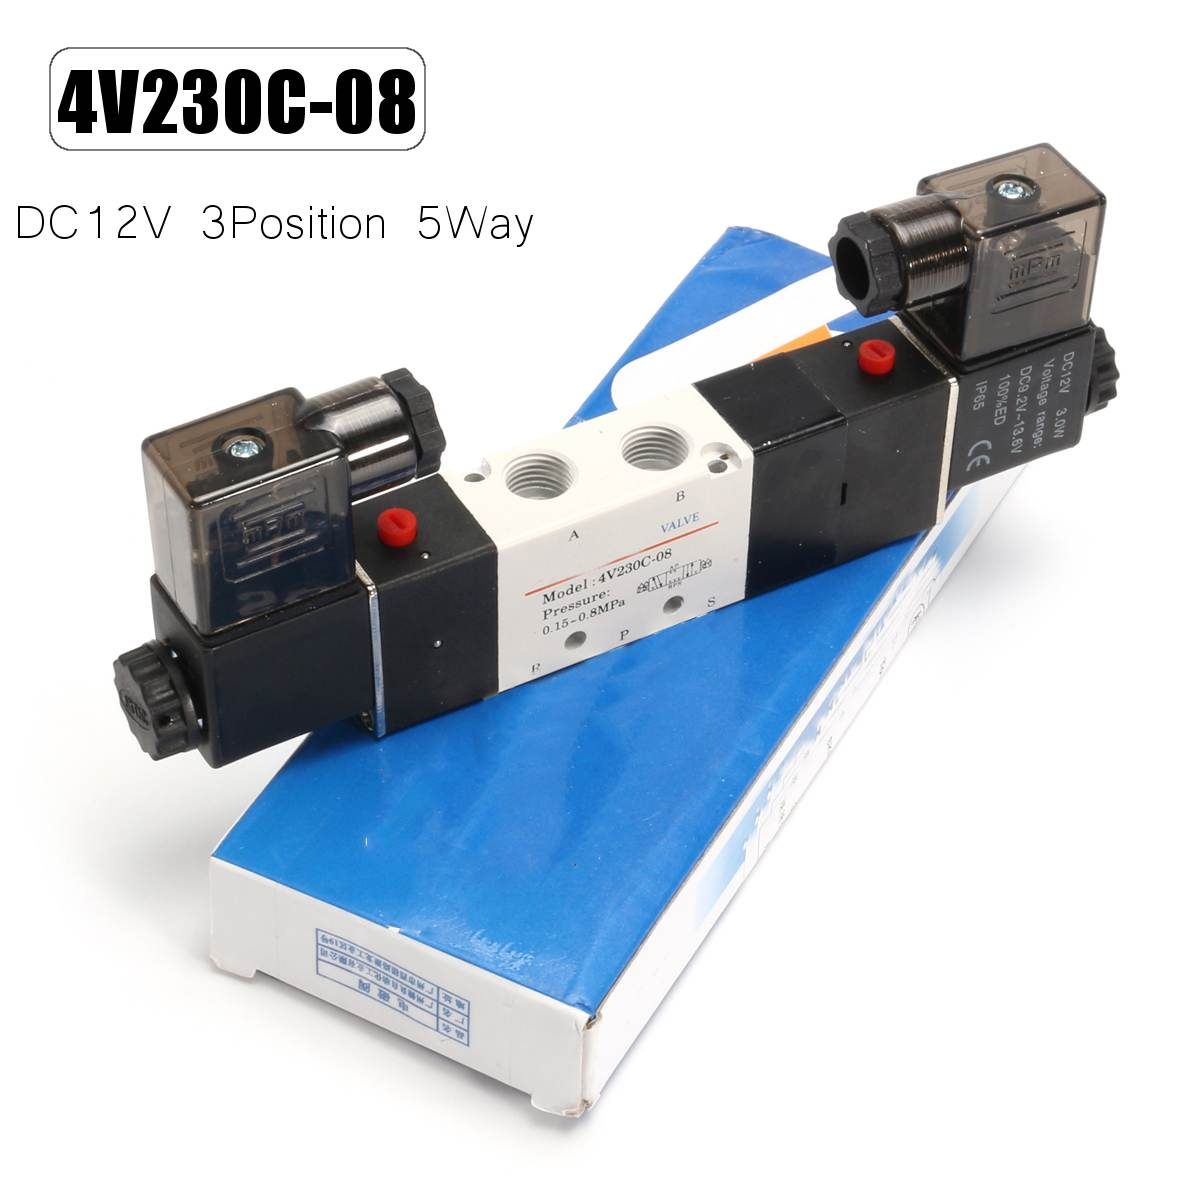 5 Port 3 Position 3/5 Way Double Head Solenoid Air Control Valve Port Center Close 4V230C-08 DC12V Best